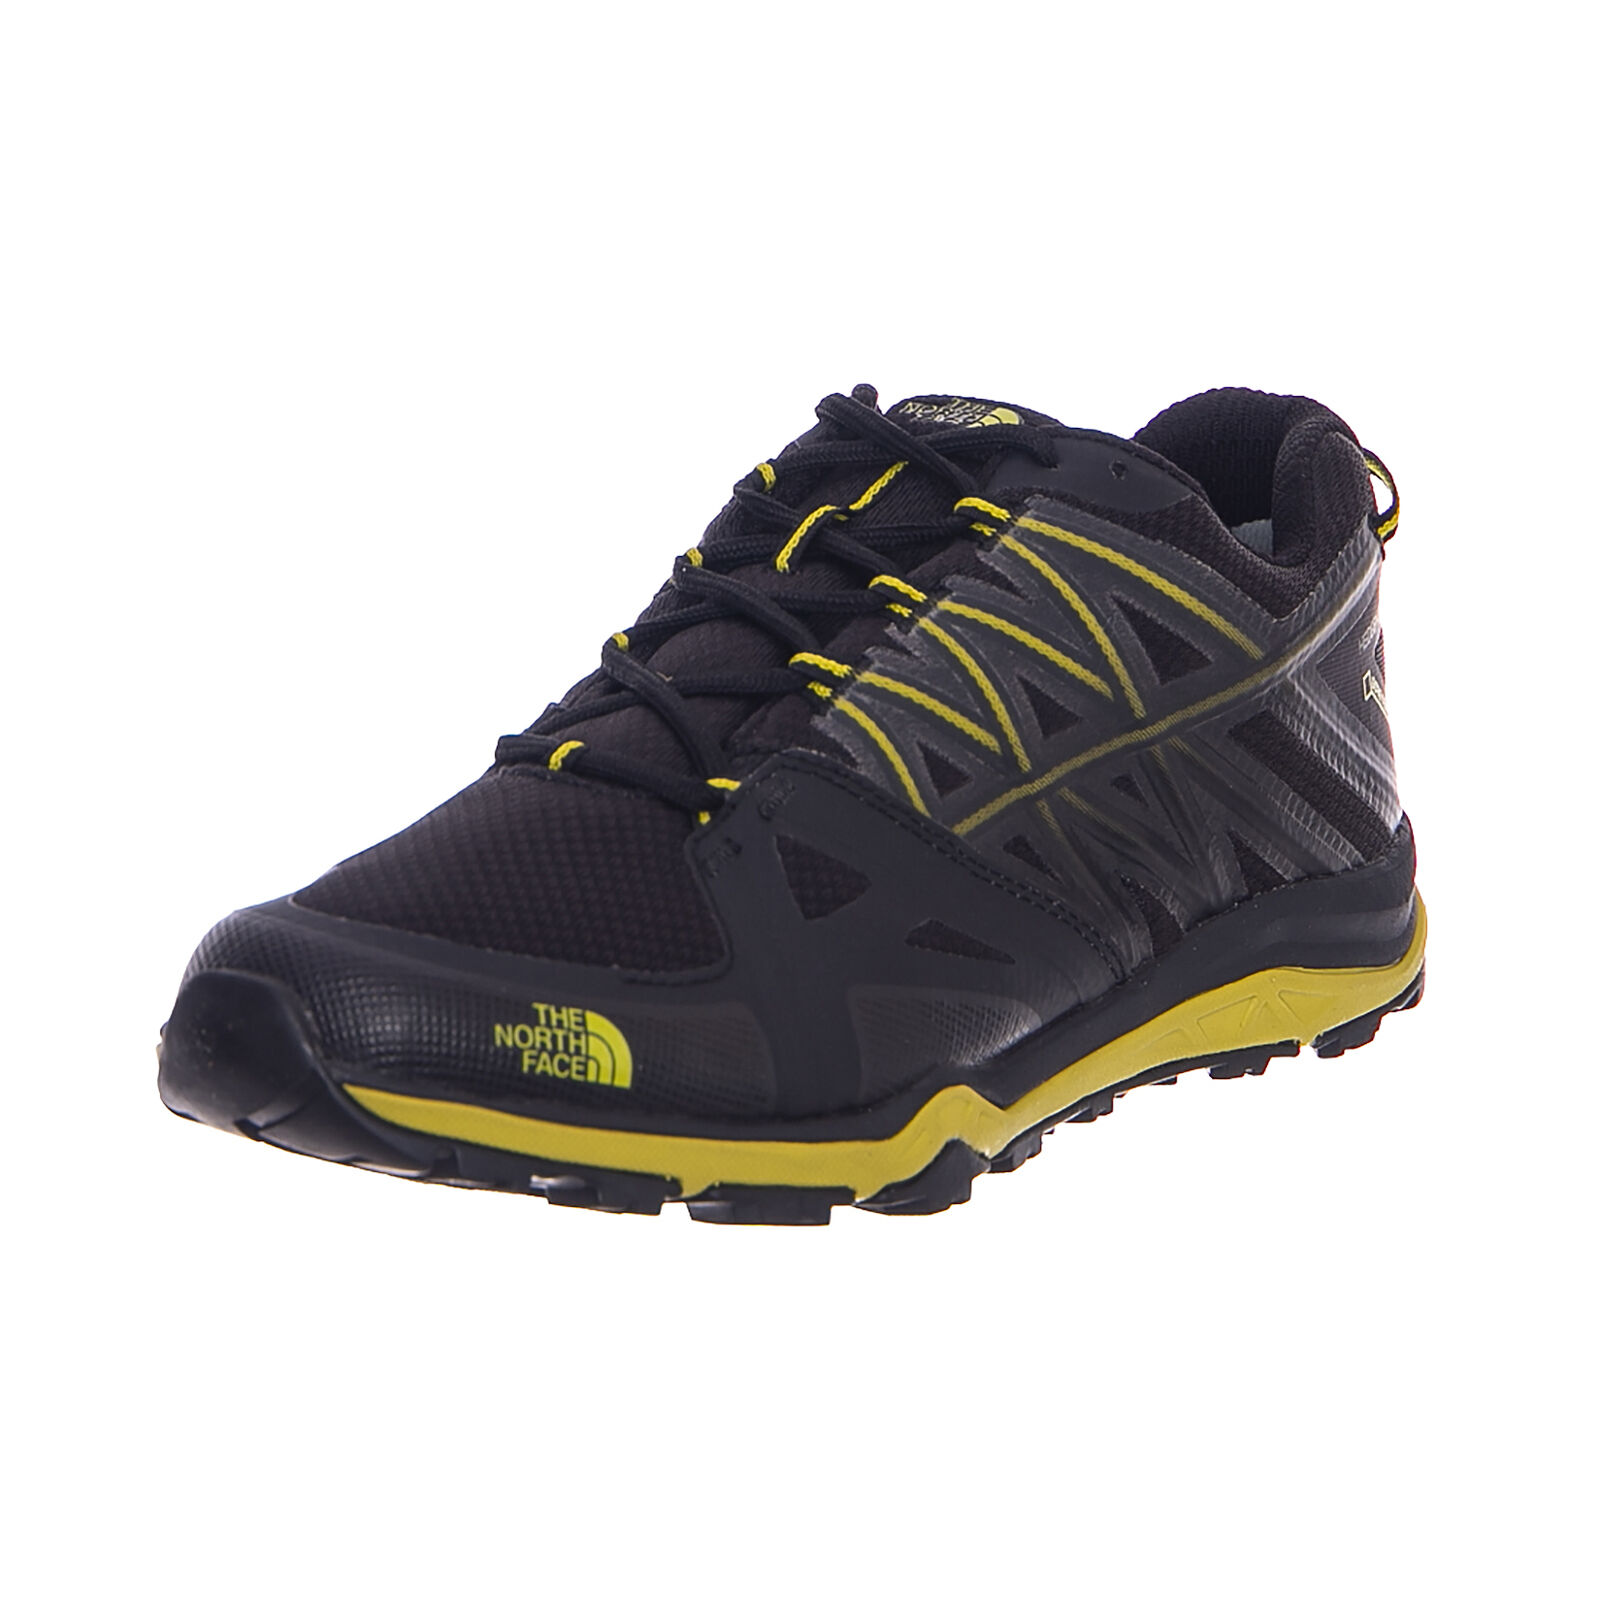 The North Face Sneakers M Hh Fp Lite Ii Gtx Tnfblk Ctrnlgn black